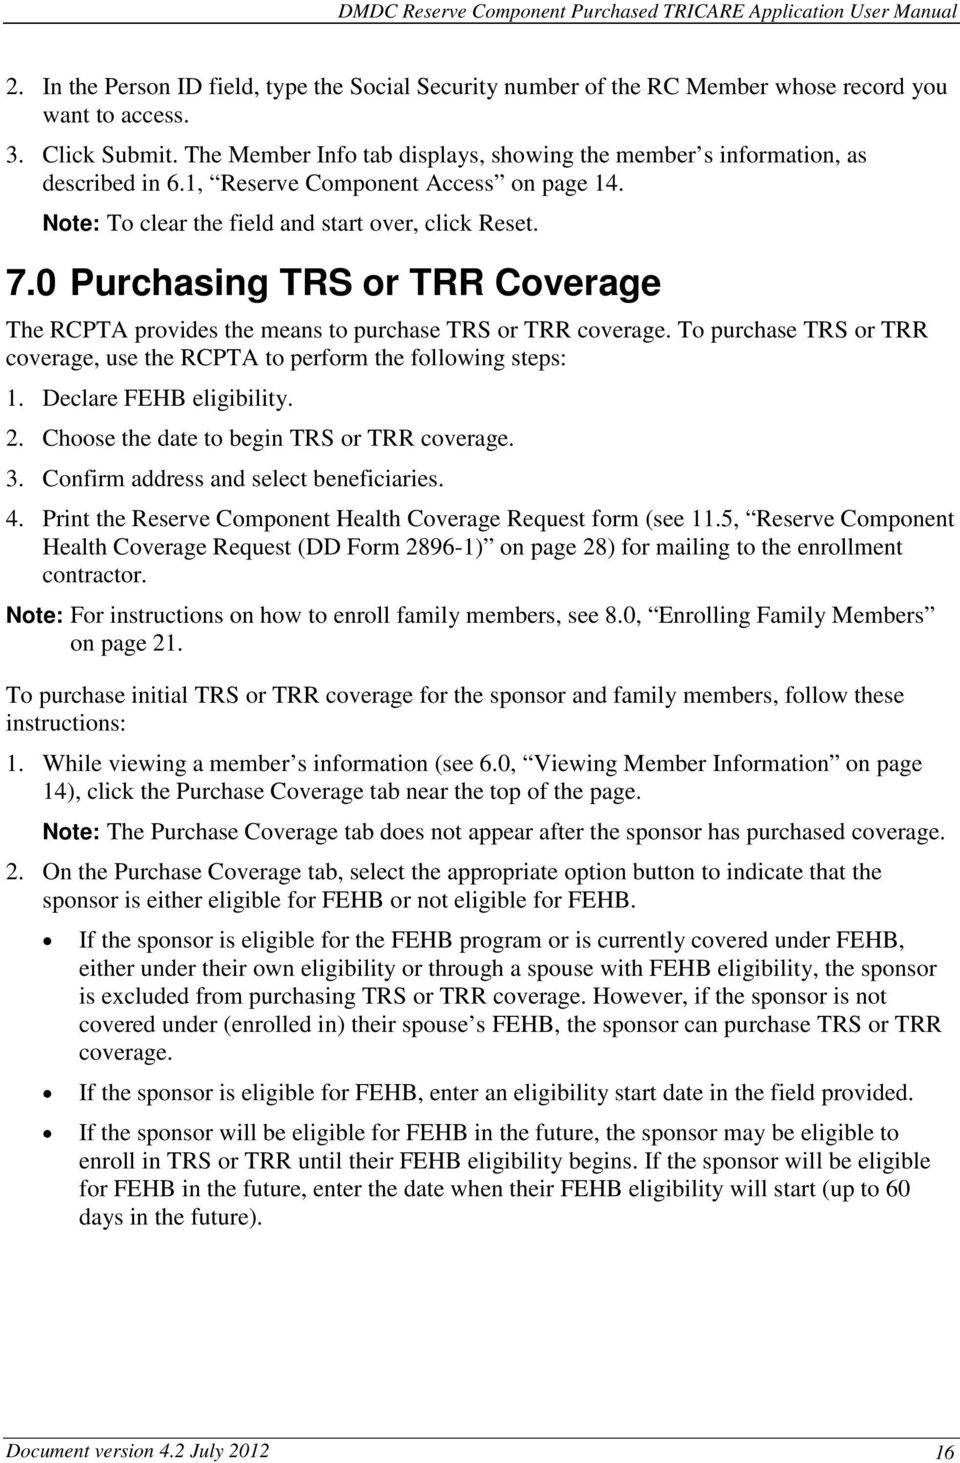 0 Purchasing TRS or TRR Coverage The RCPTA provides the means to purchase TRS or TRR coverage. To purchase TRS or TRR coverage, use the RCPTA to perform the following steps: 1.